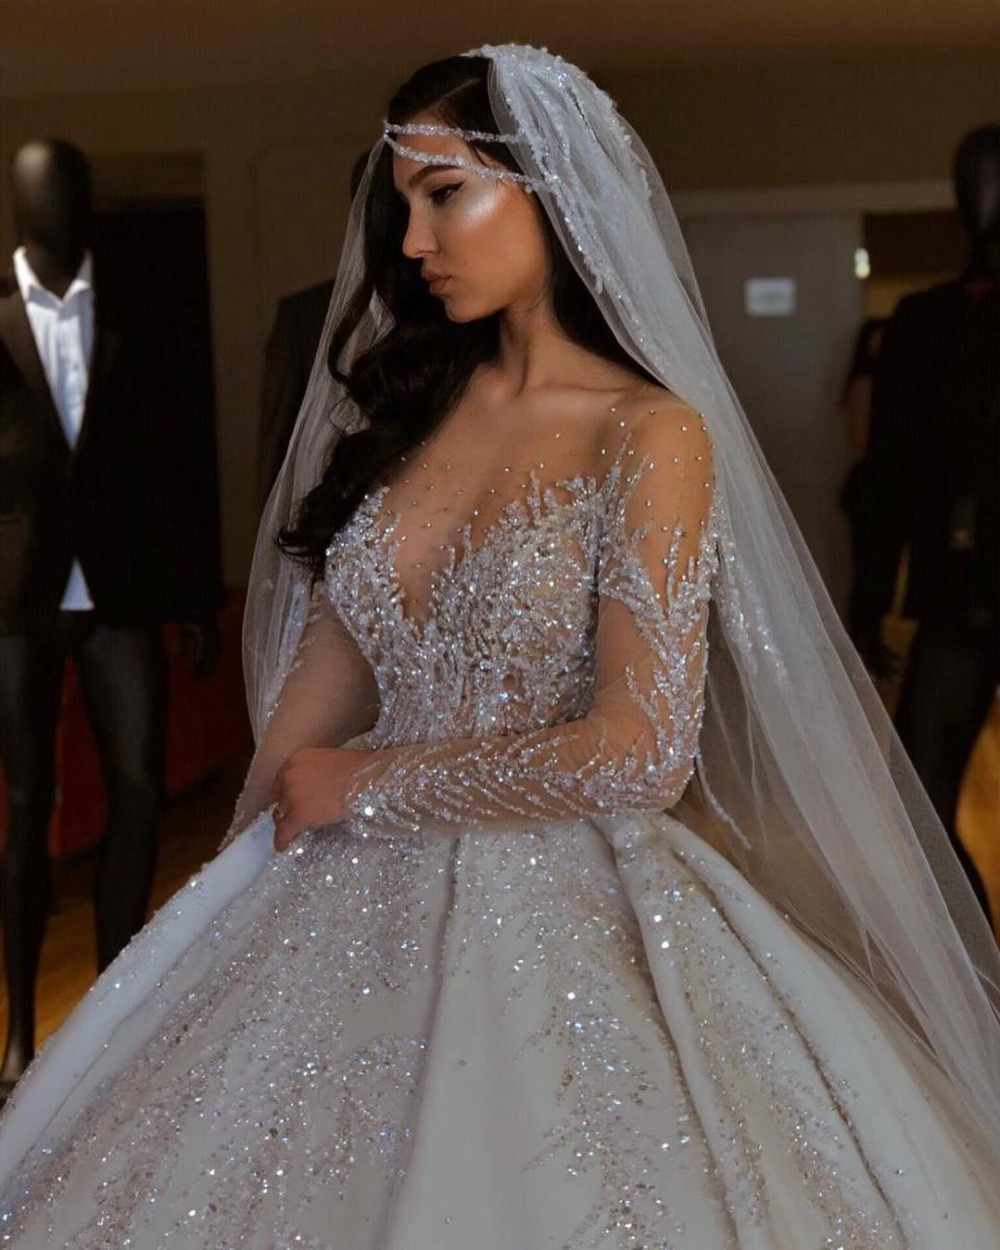 Fashion Hot Sale New 2020 African Wedding Dresses Sheer Neck Long Sleeves Bridal Dresses Beaded Sequins Satin Wedding Gowns